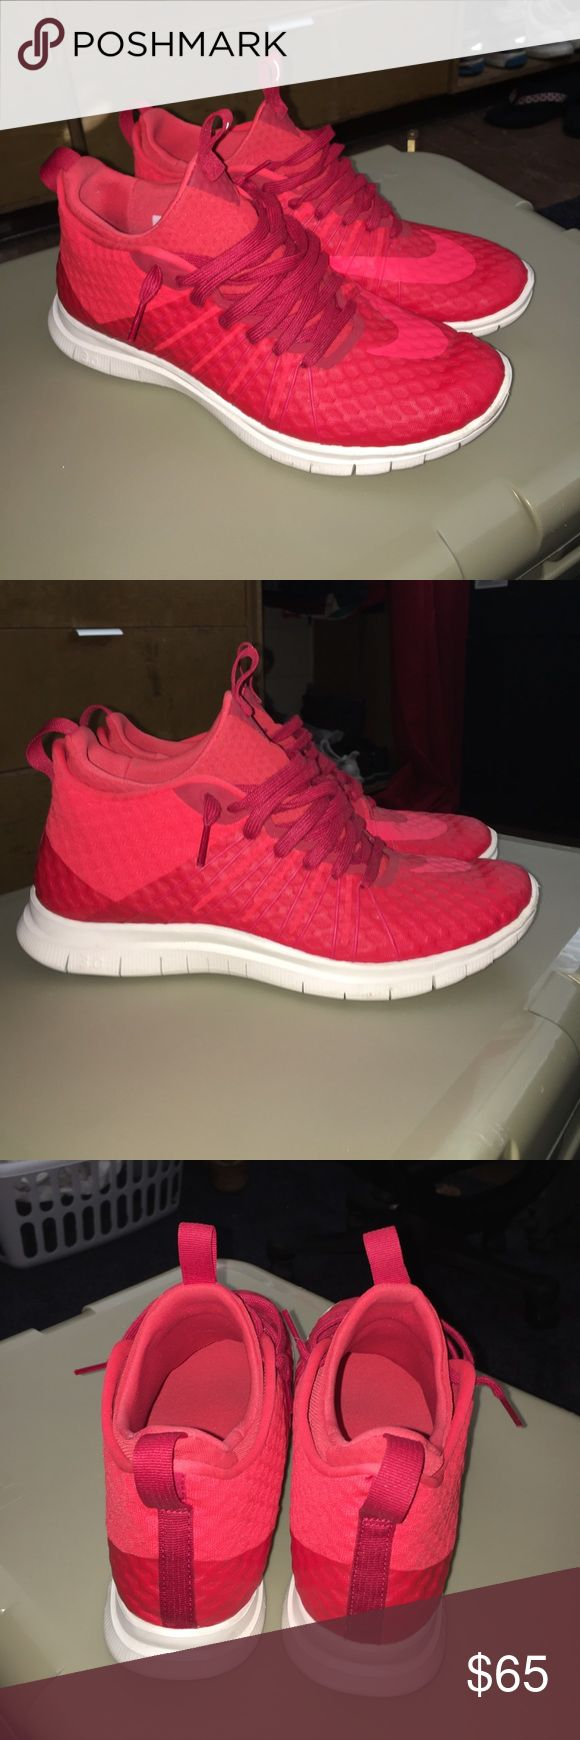 all red nike basketball shoes ntc training